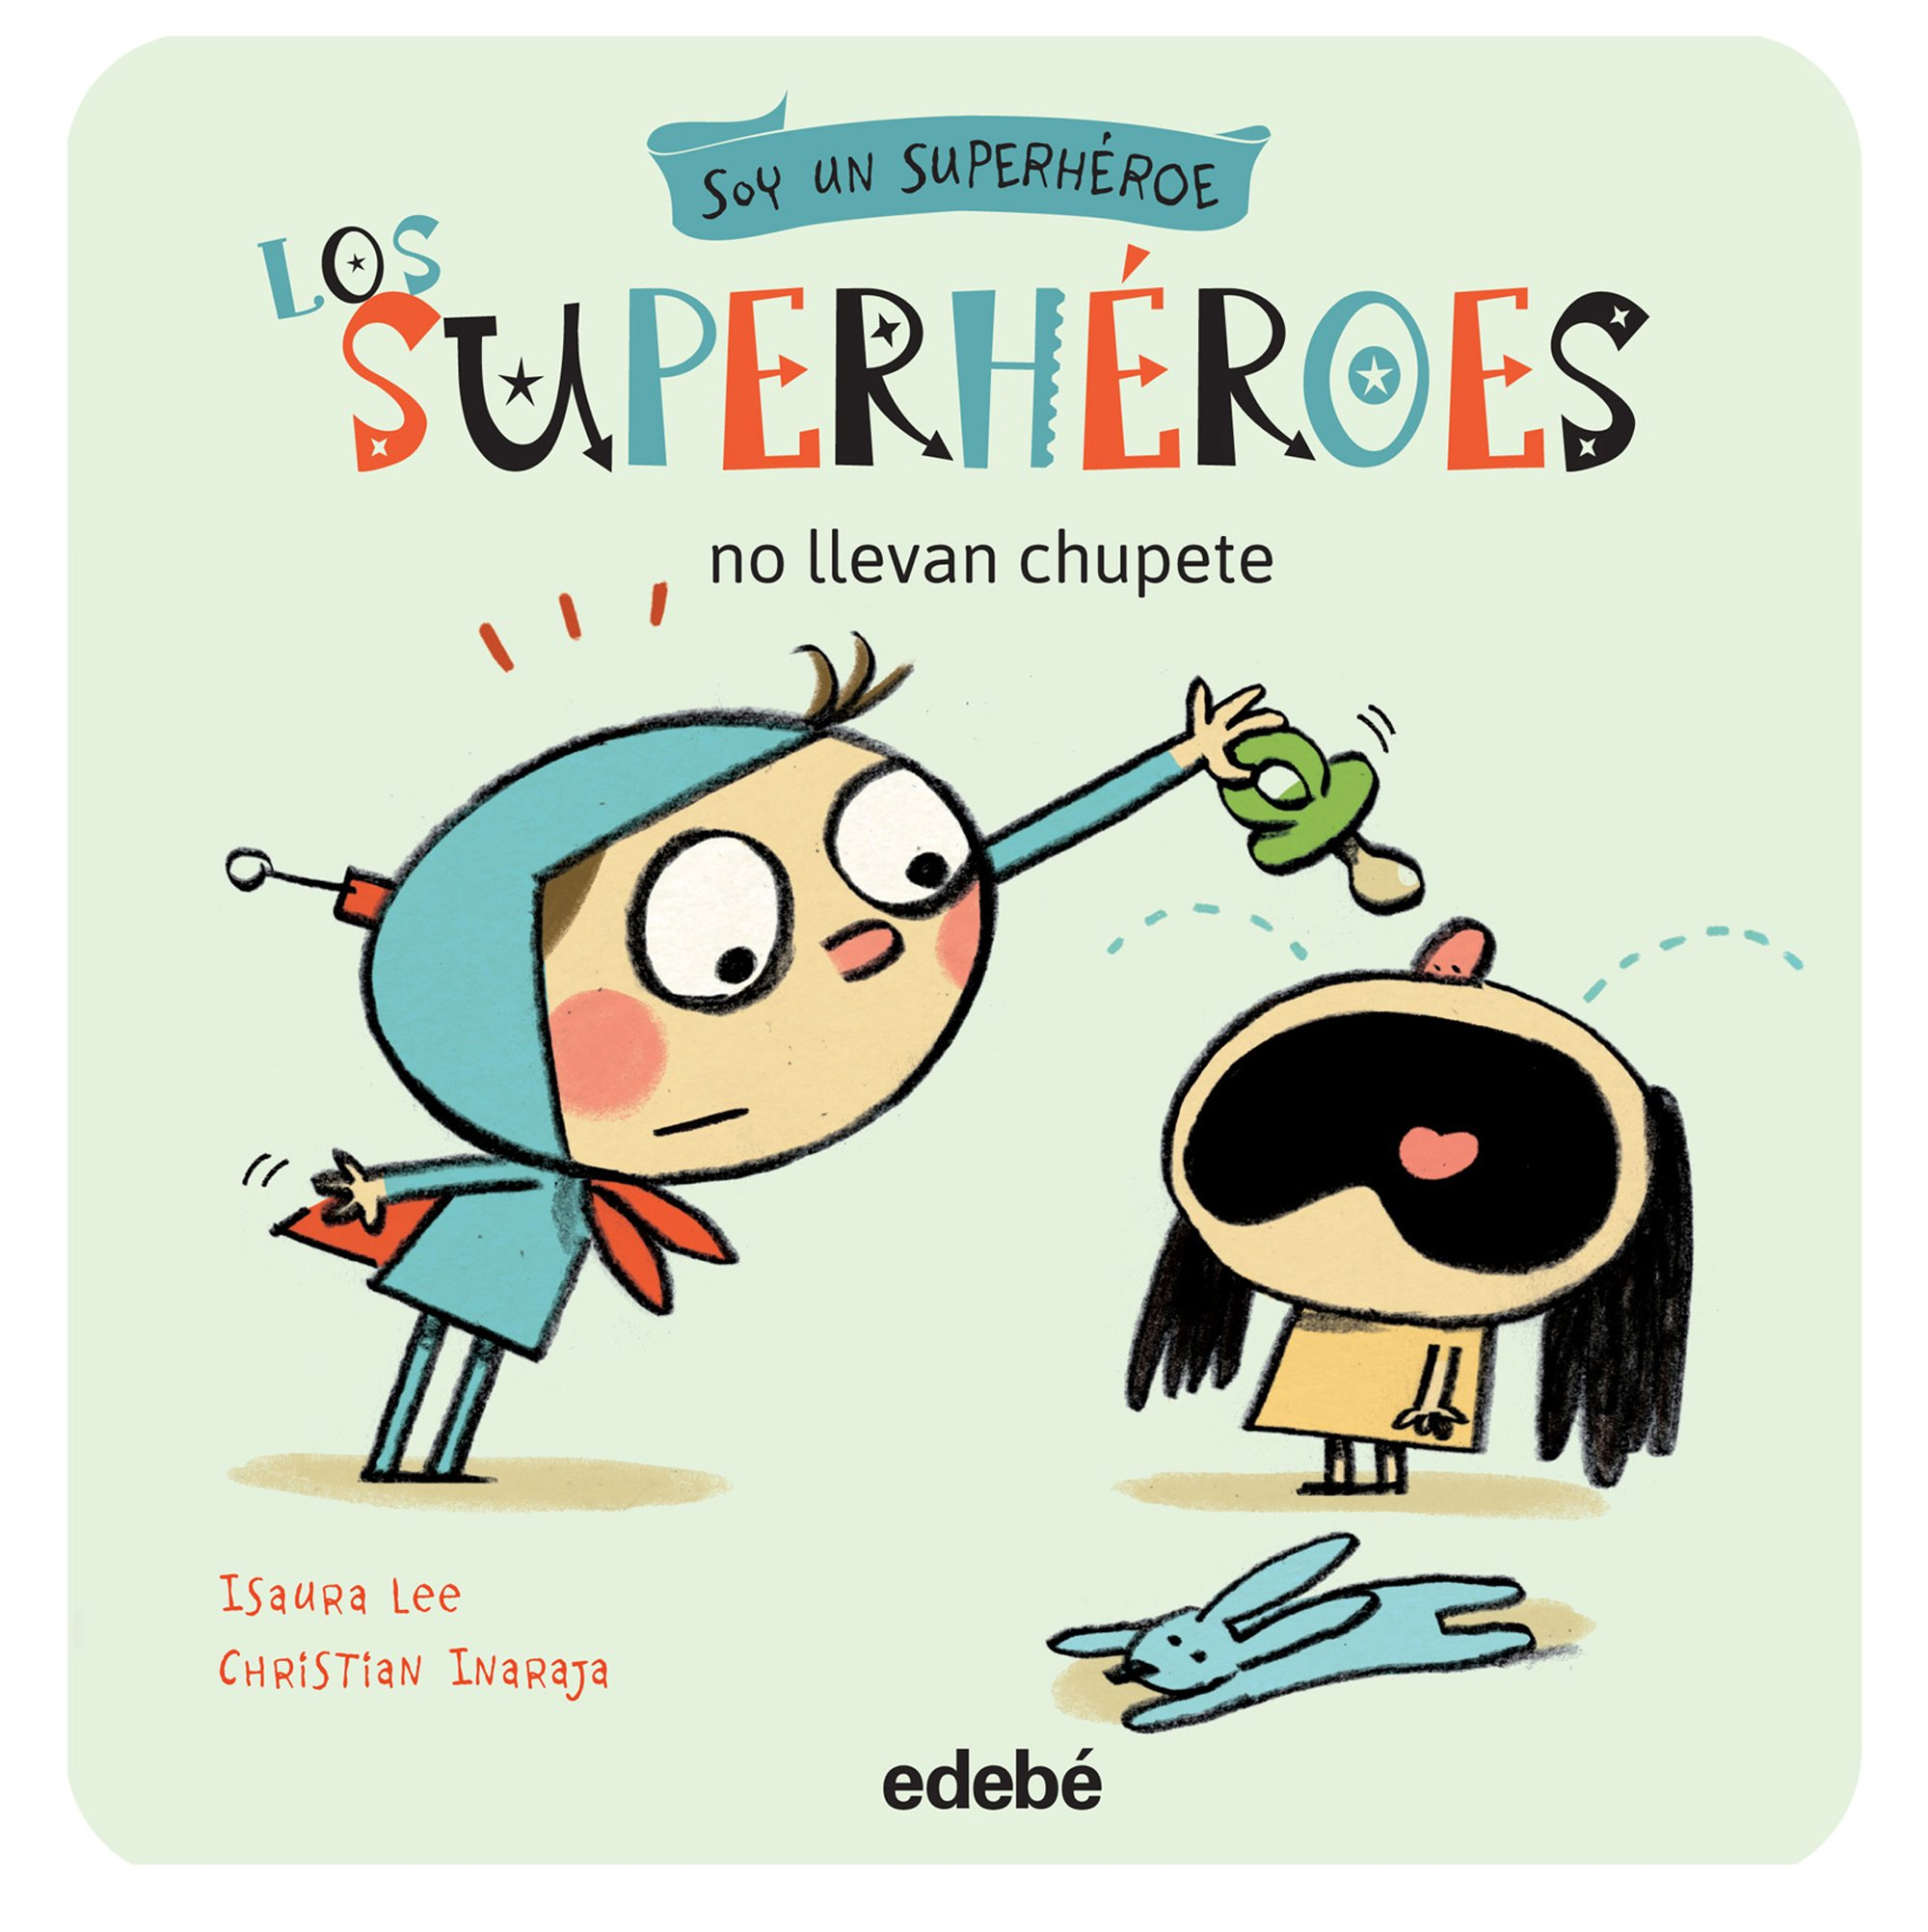 Amazon.com: Los superhéroes no llevan chupete (Spanish ...